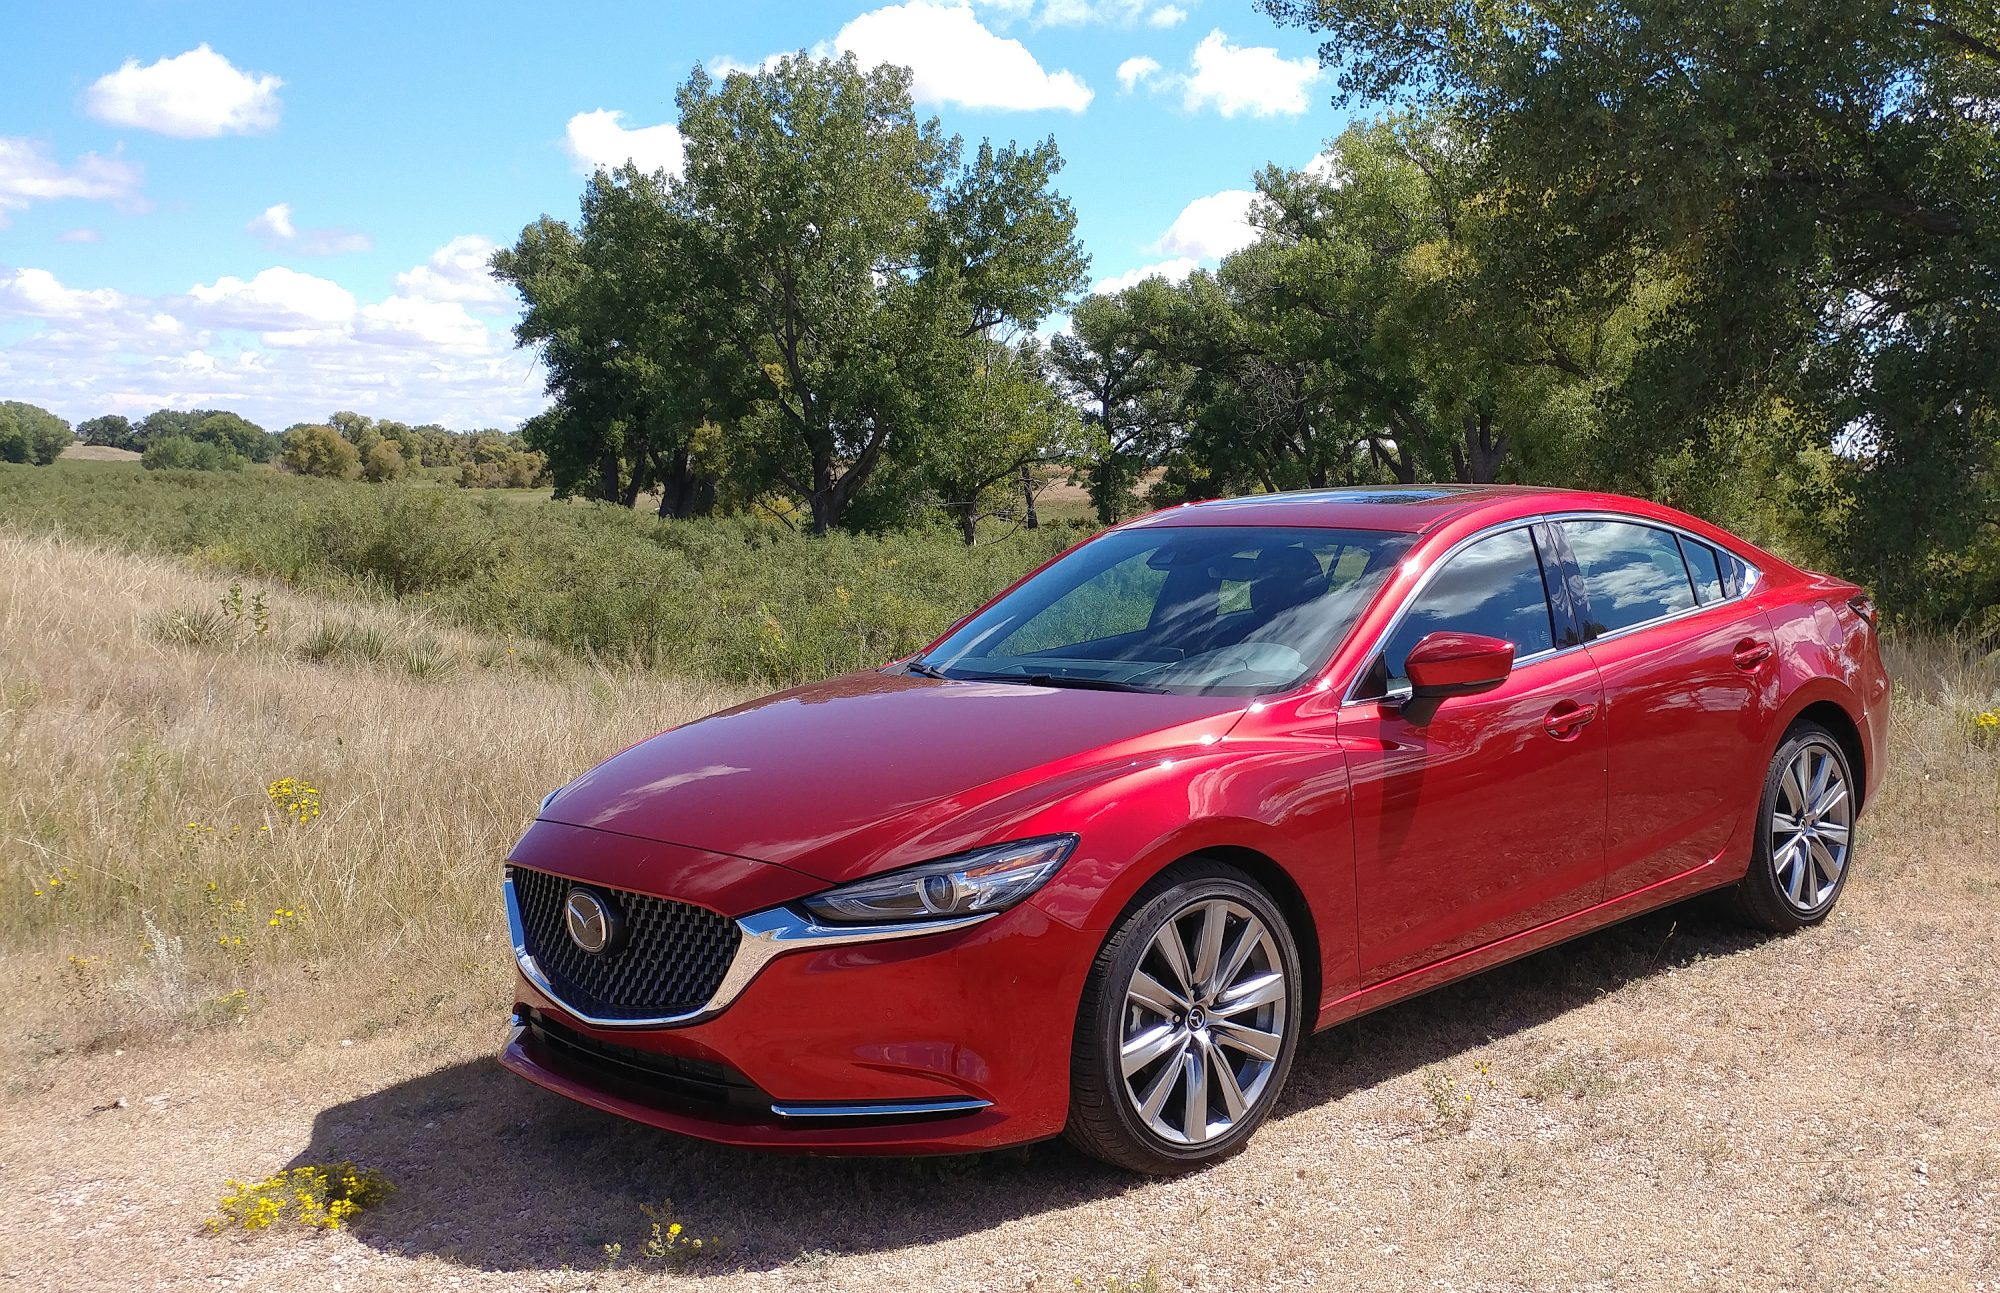 hight resolution of on looks the mazda 6 remains consistent and modern the updated look of the mazda 6 is mostly centered around the car s interior as the exterior maintains